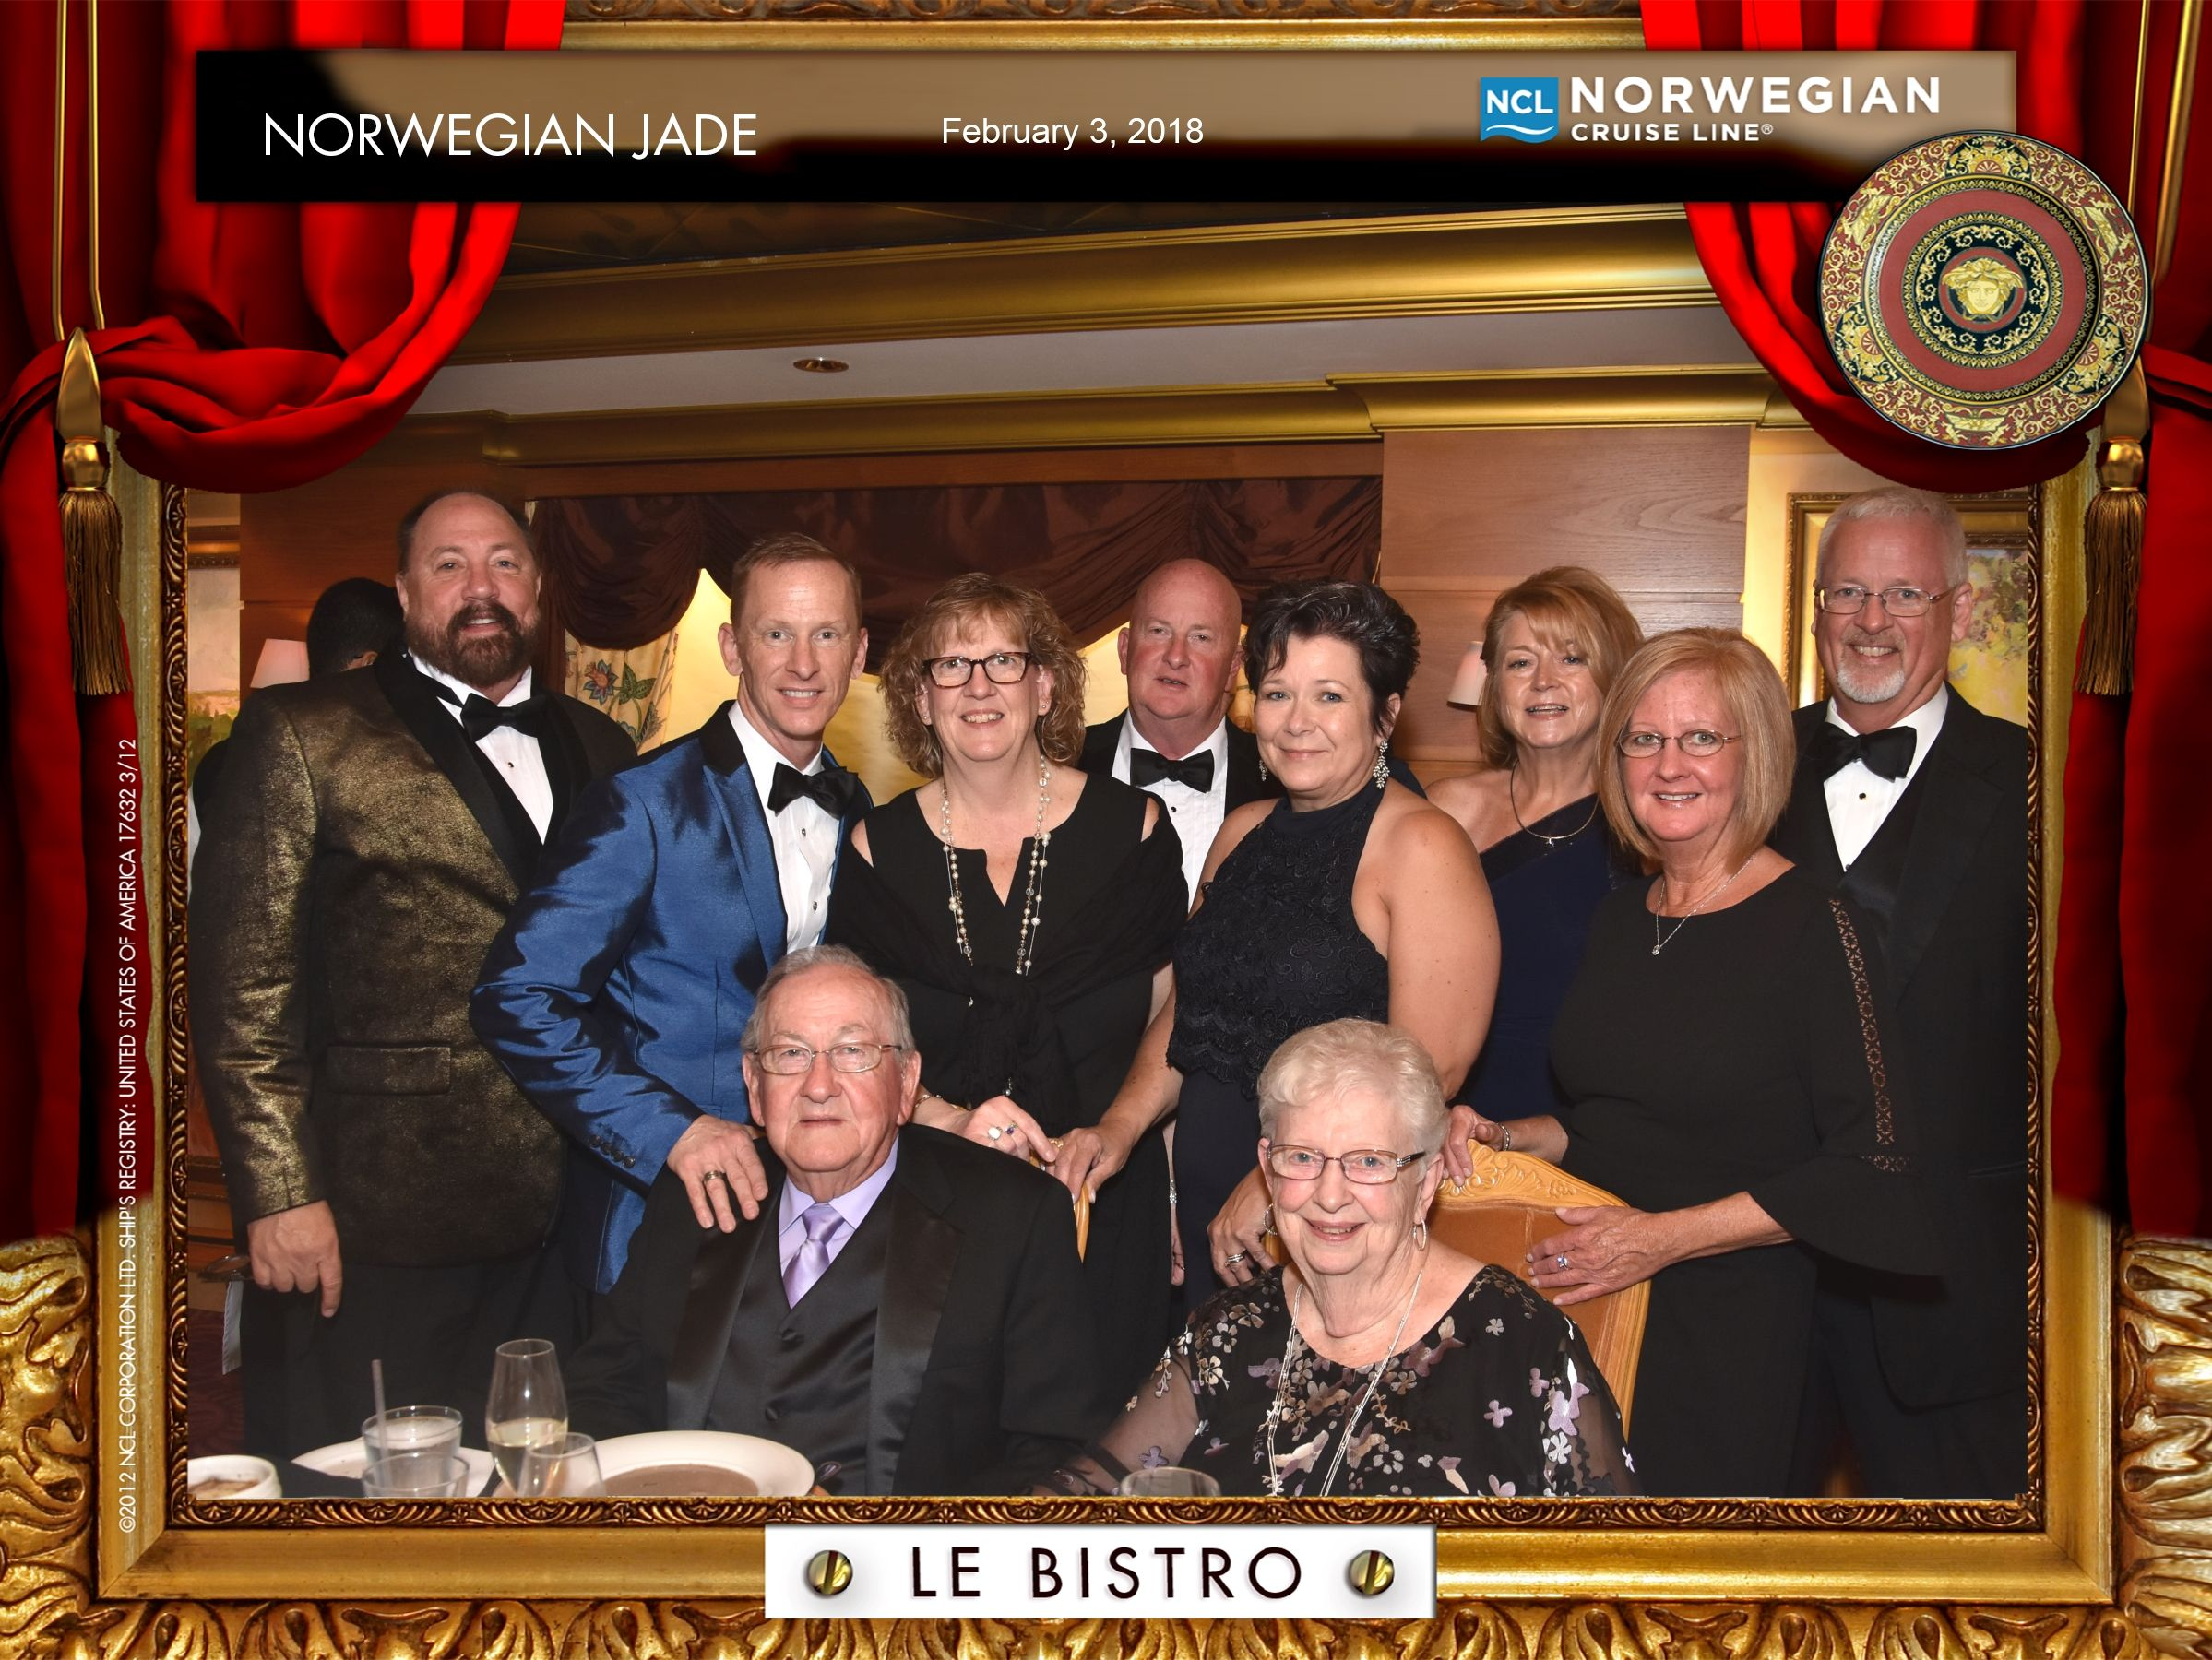 Family Pictures On The Cruise Is Always Fun To Dress Up For Cruise Pictures Norwegian Jade Cruise